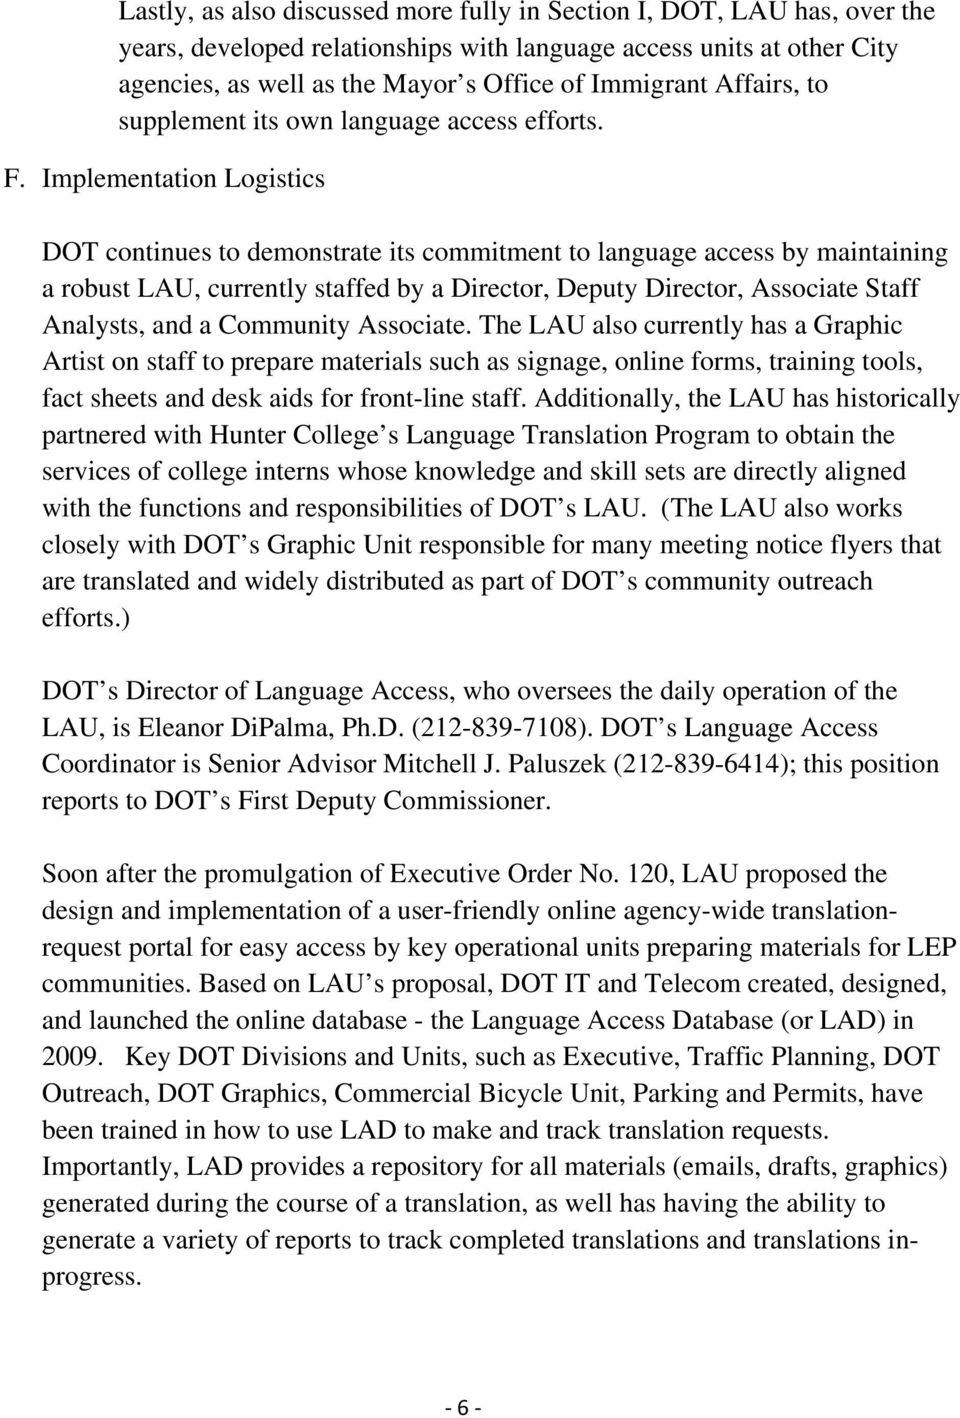 Implementation Logistics DOT continues to demonstrate its commitment to language access by maintaining a robust LAU, currently staffed by a Director, Deputy Director, Associate Staff Analysts, and a